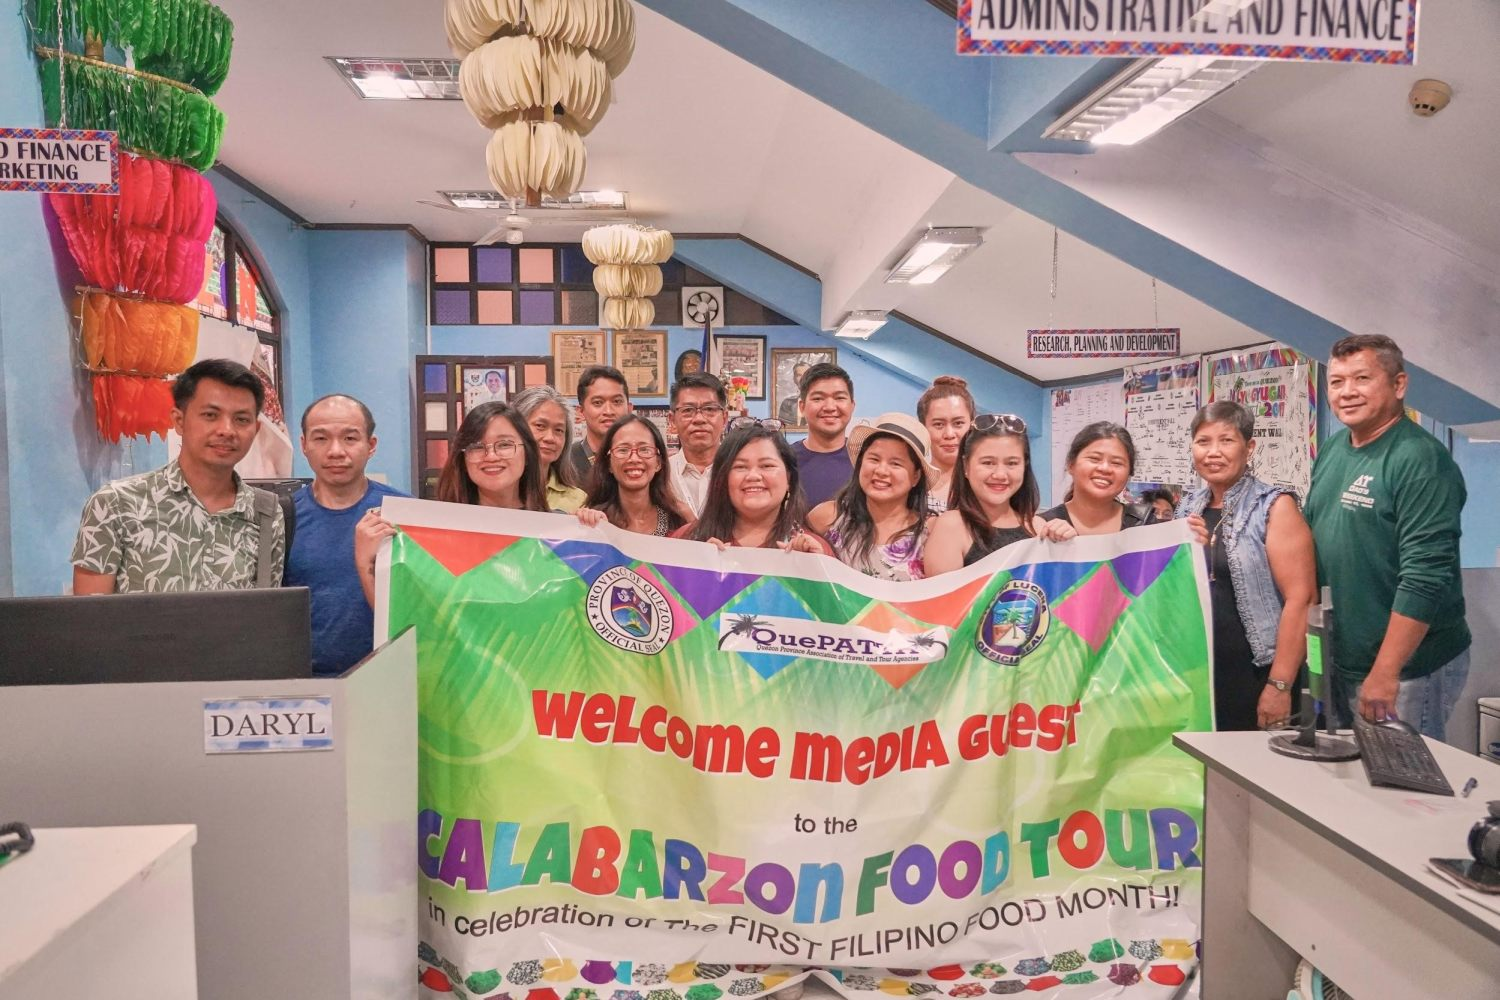 CALABARZON Food Trip in Celebration of Filipino Food Month | Cavite, Batangas, Quezon